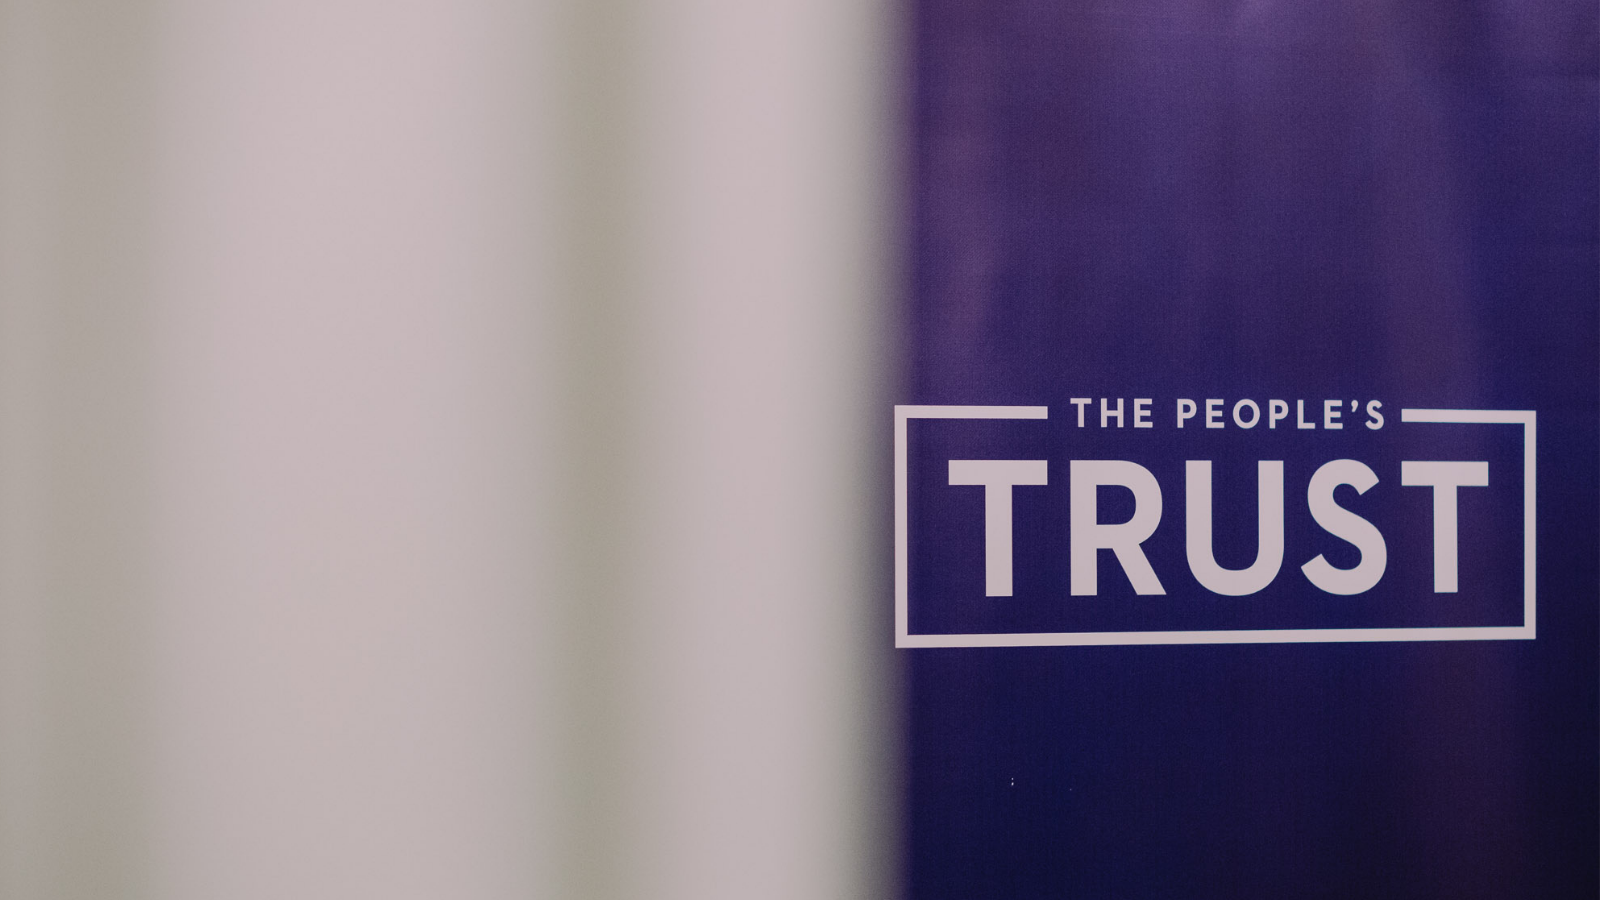 The People's Trust banner